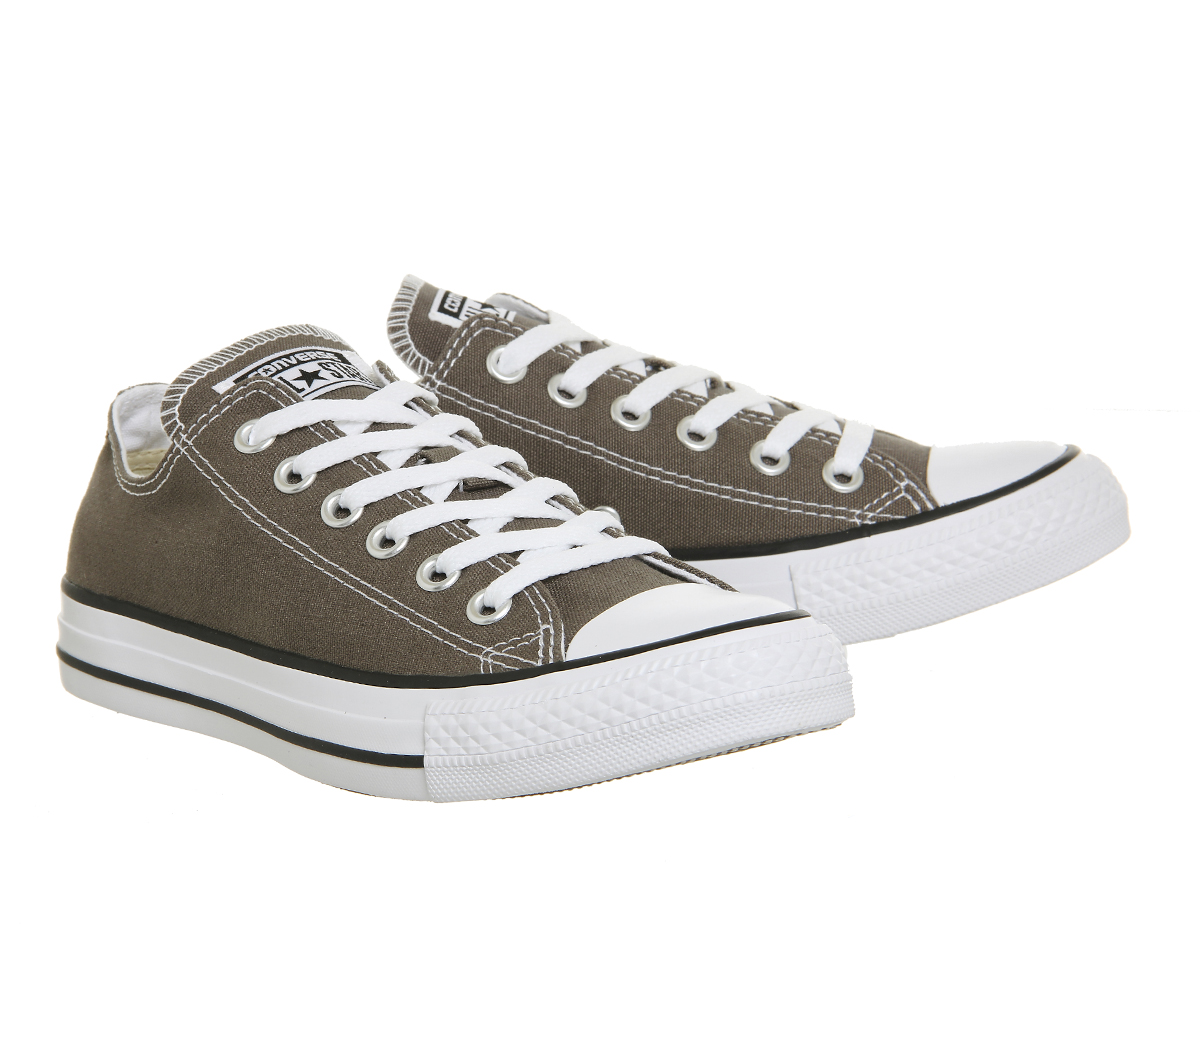 e87d4171d962 Converse Converse All Star Low Charcoal Trainers Shoes